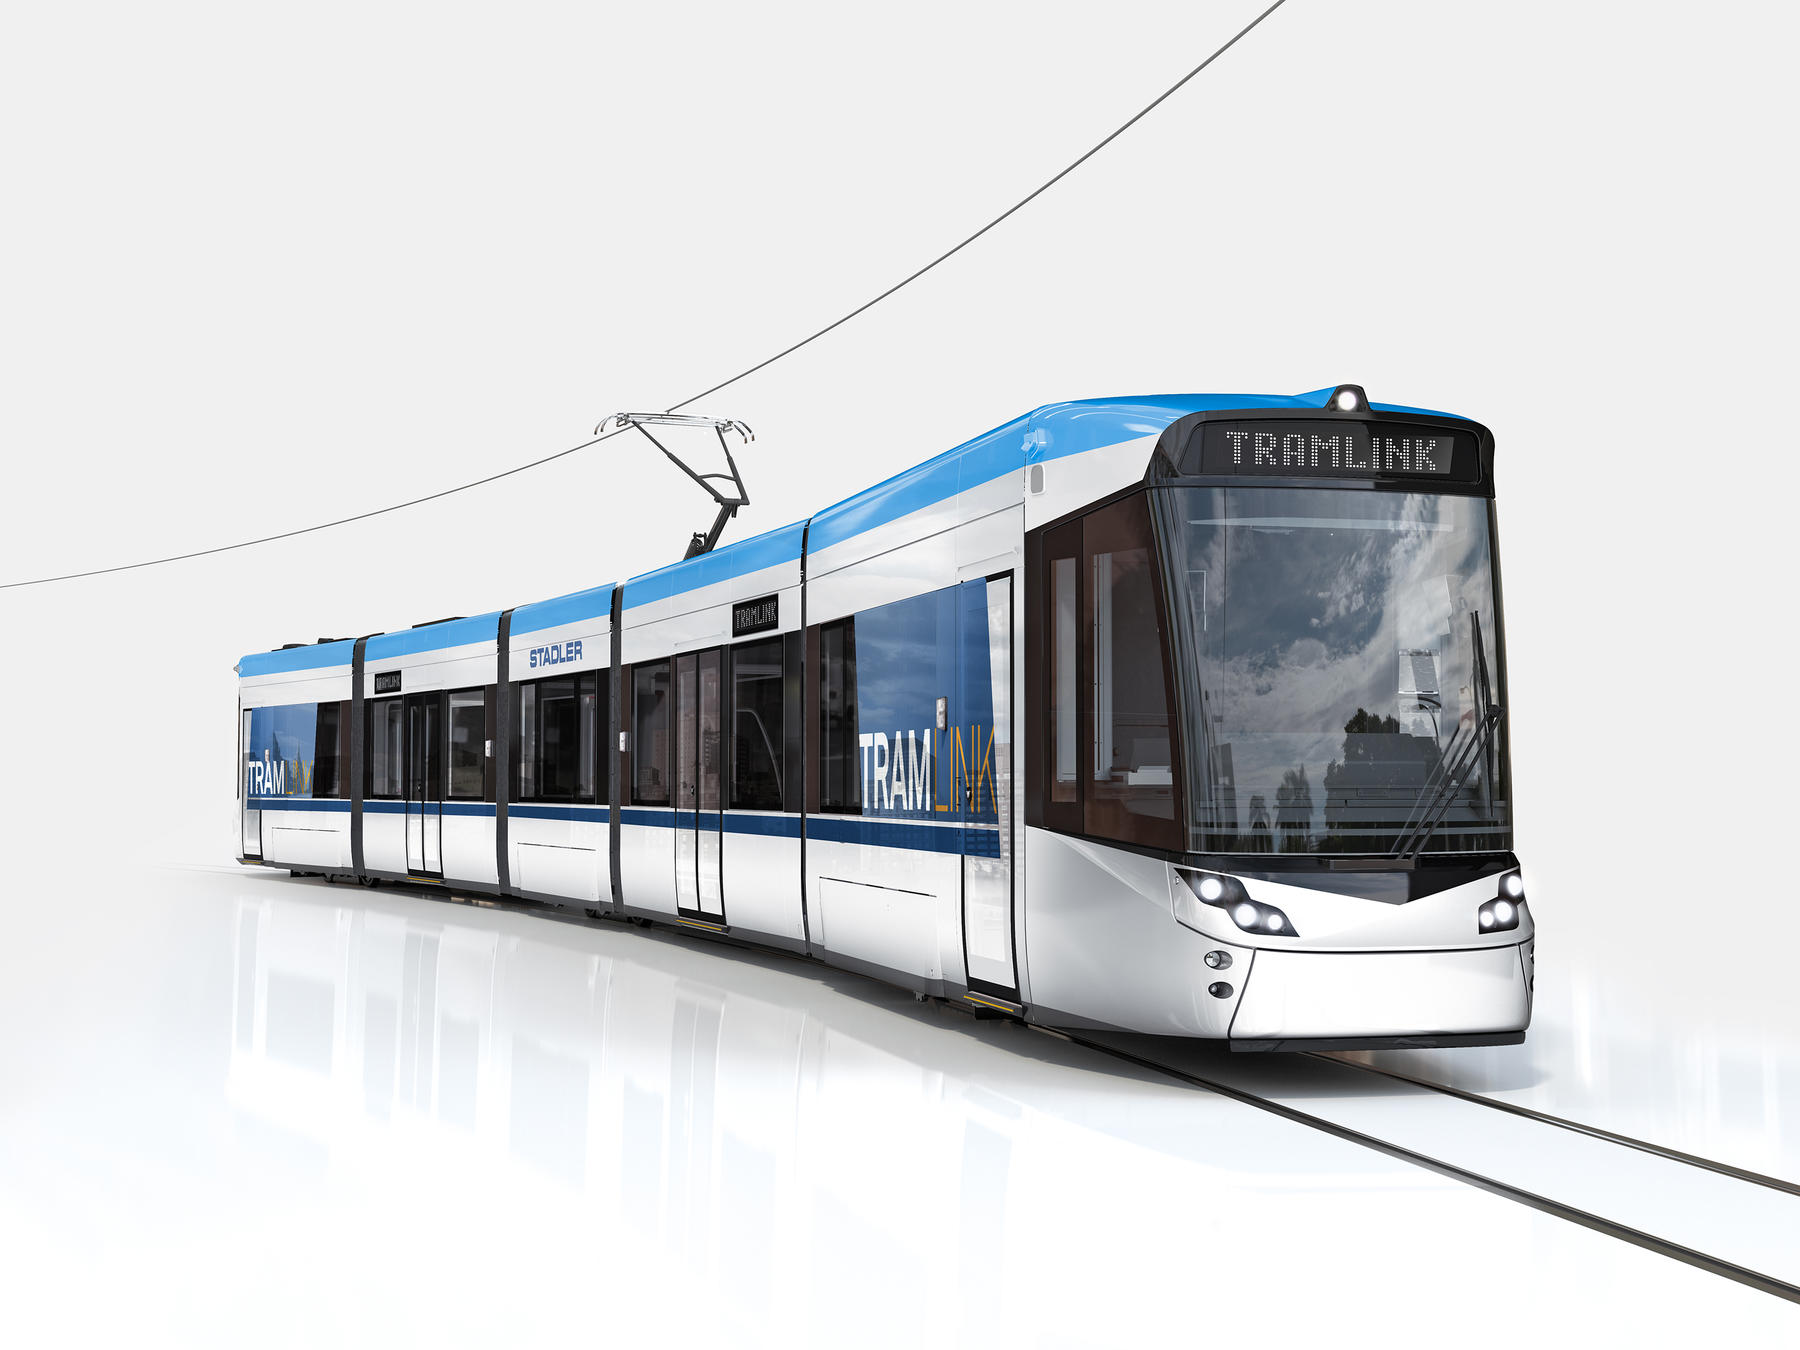 Trams for Bern - Bernmobil orders 27 TRAMLINK trams from Stadler